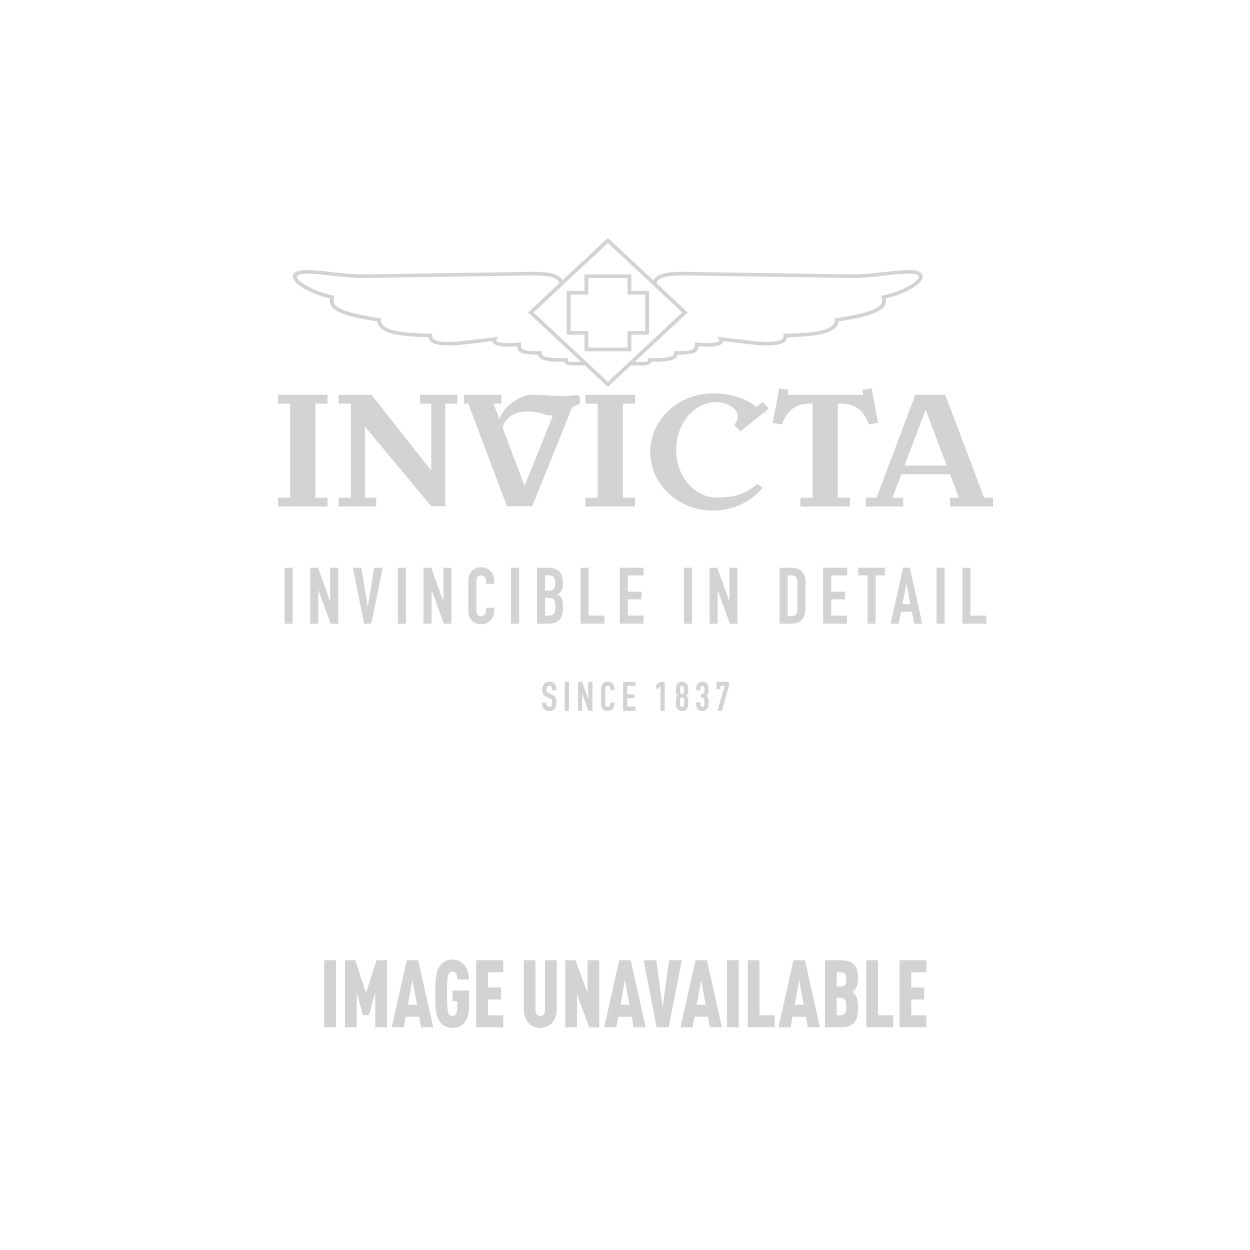 Invicta I-Force Quartz Watch - Black, Stainless Steel case with Black tone Silicone band - Model 16975